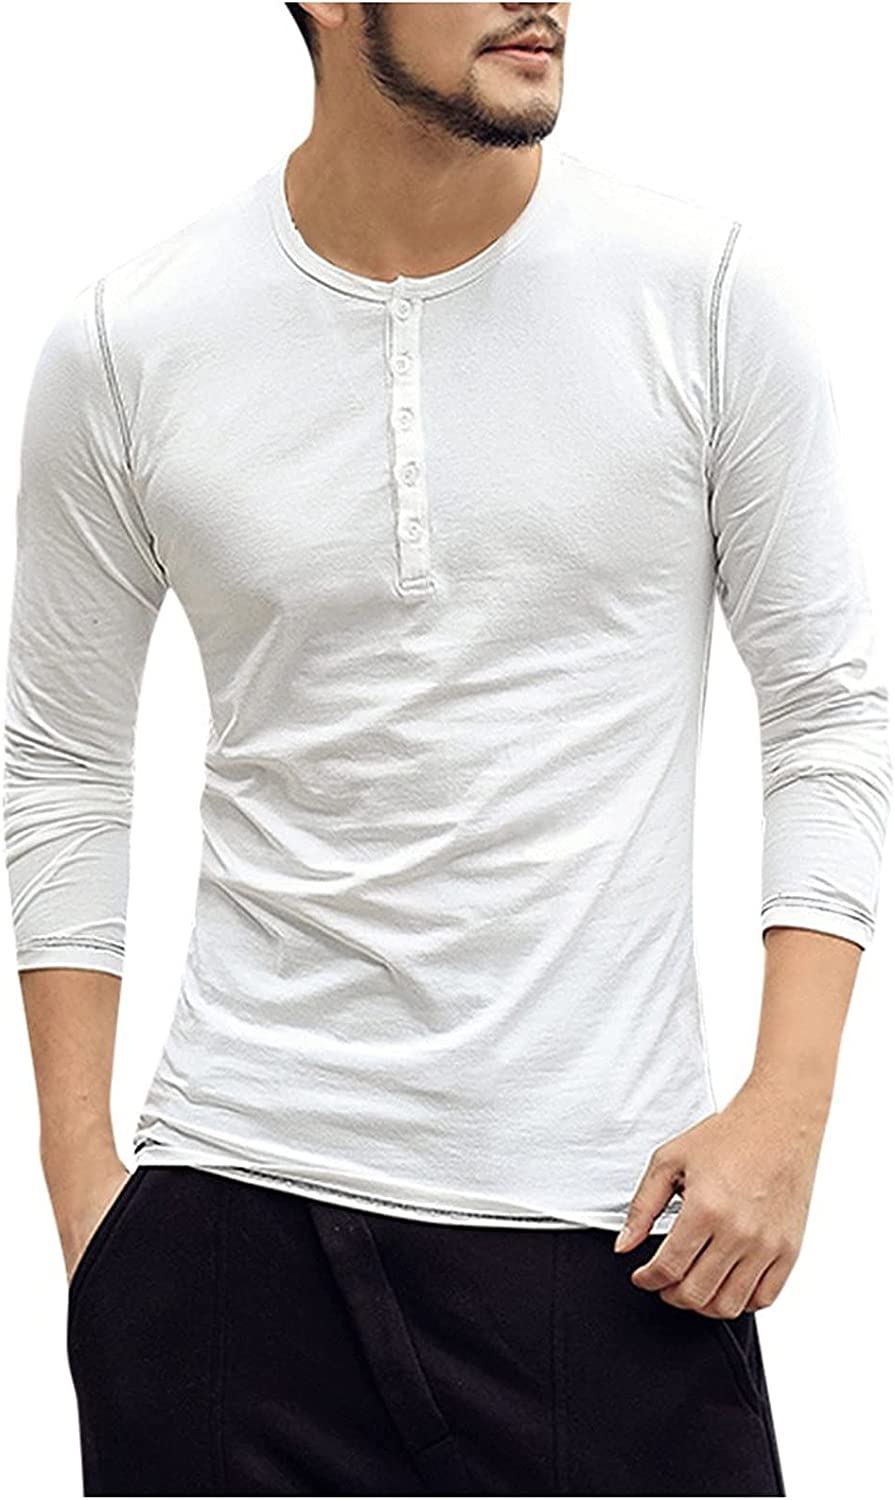 xoxing Long Sleeve for Men Casual Plus Size Loose V-Neck Buttons Solid Tops Blouse Pullover Sweatershirts